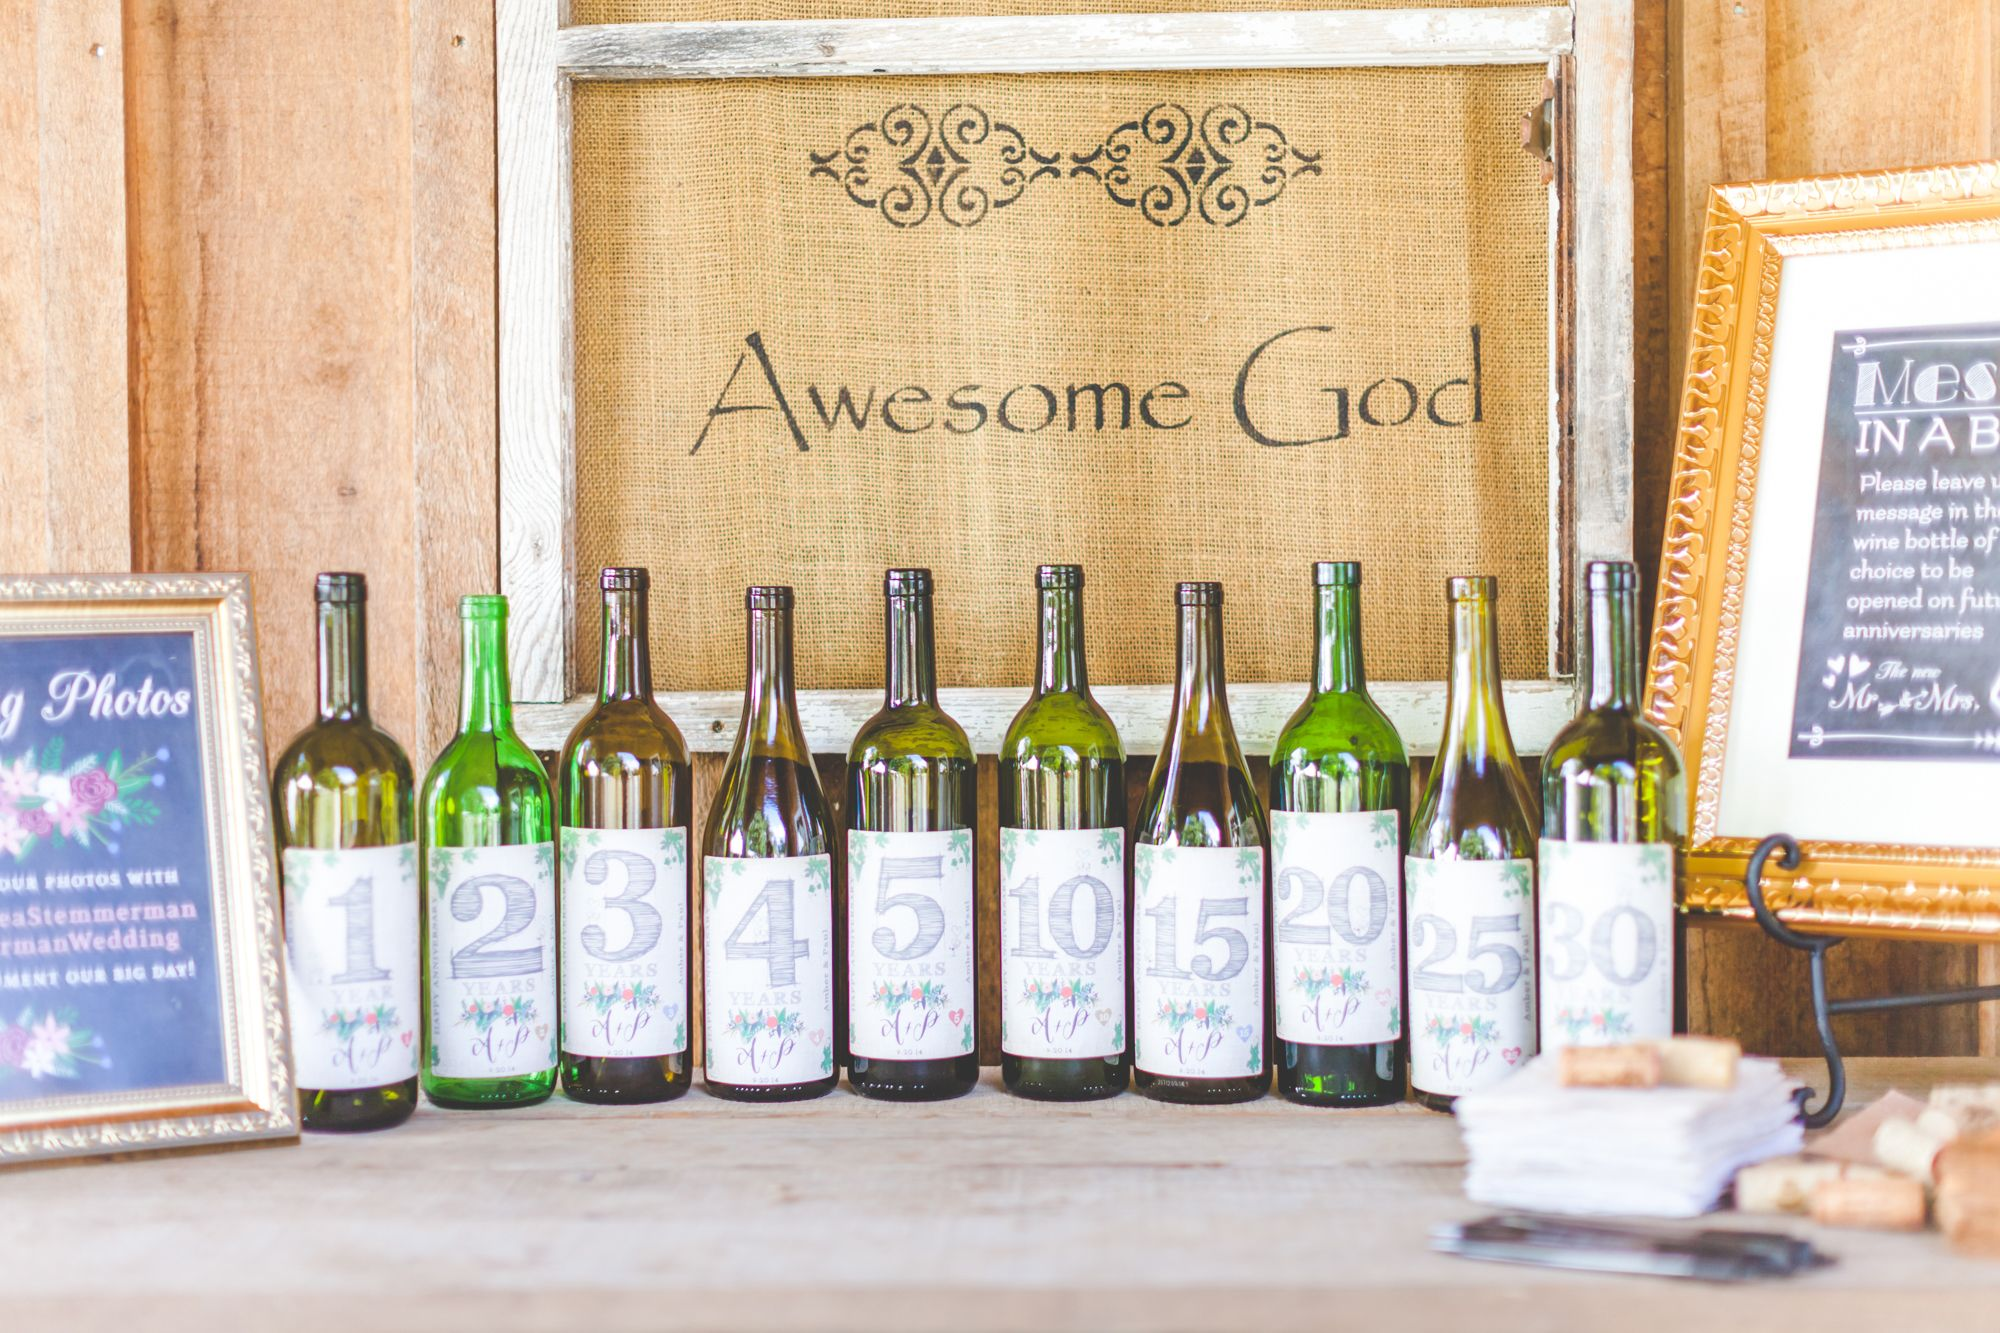 Time capsule wine bottles as a reception guest book